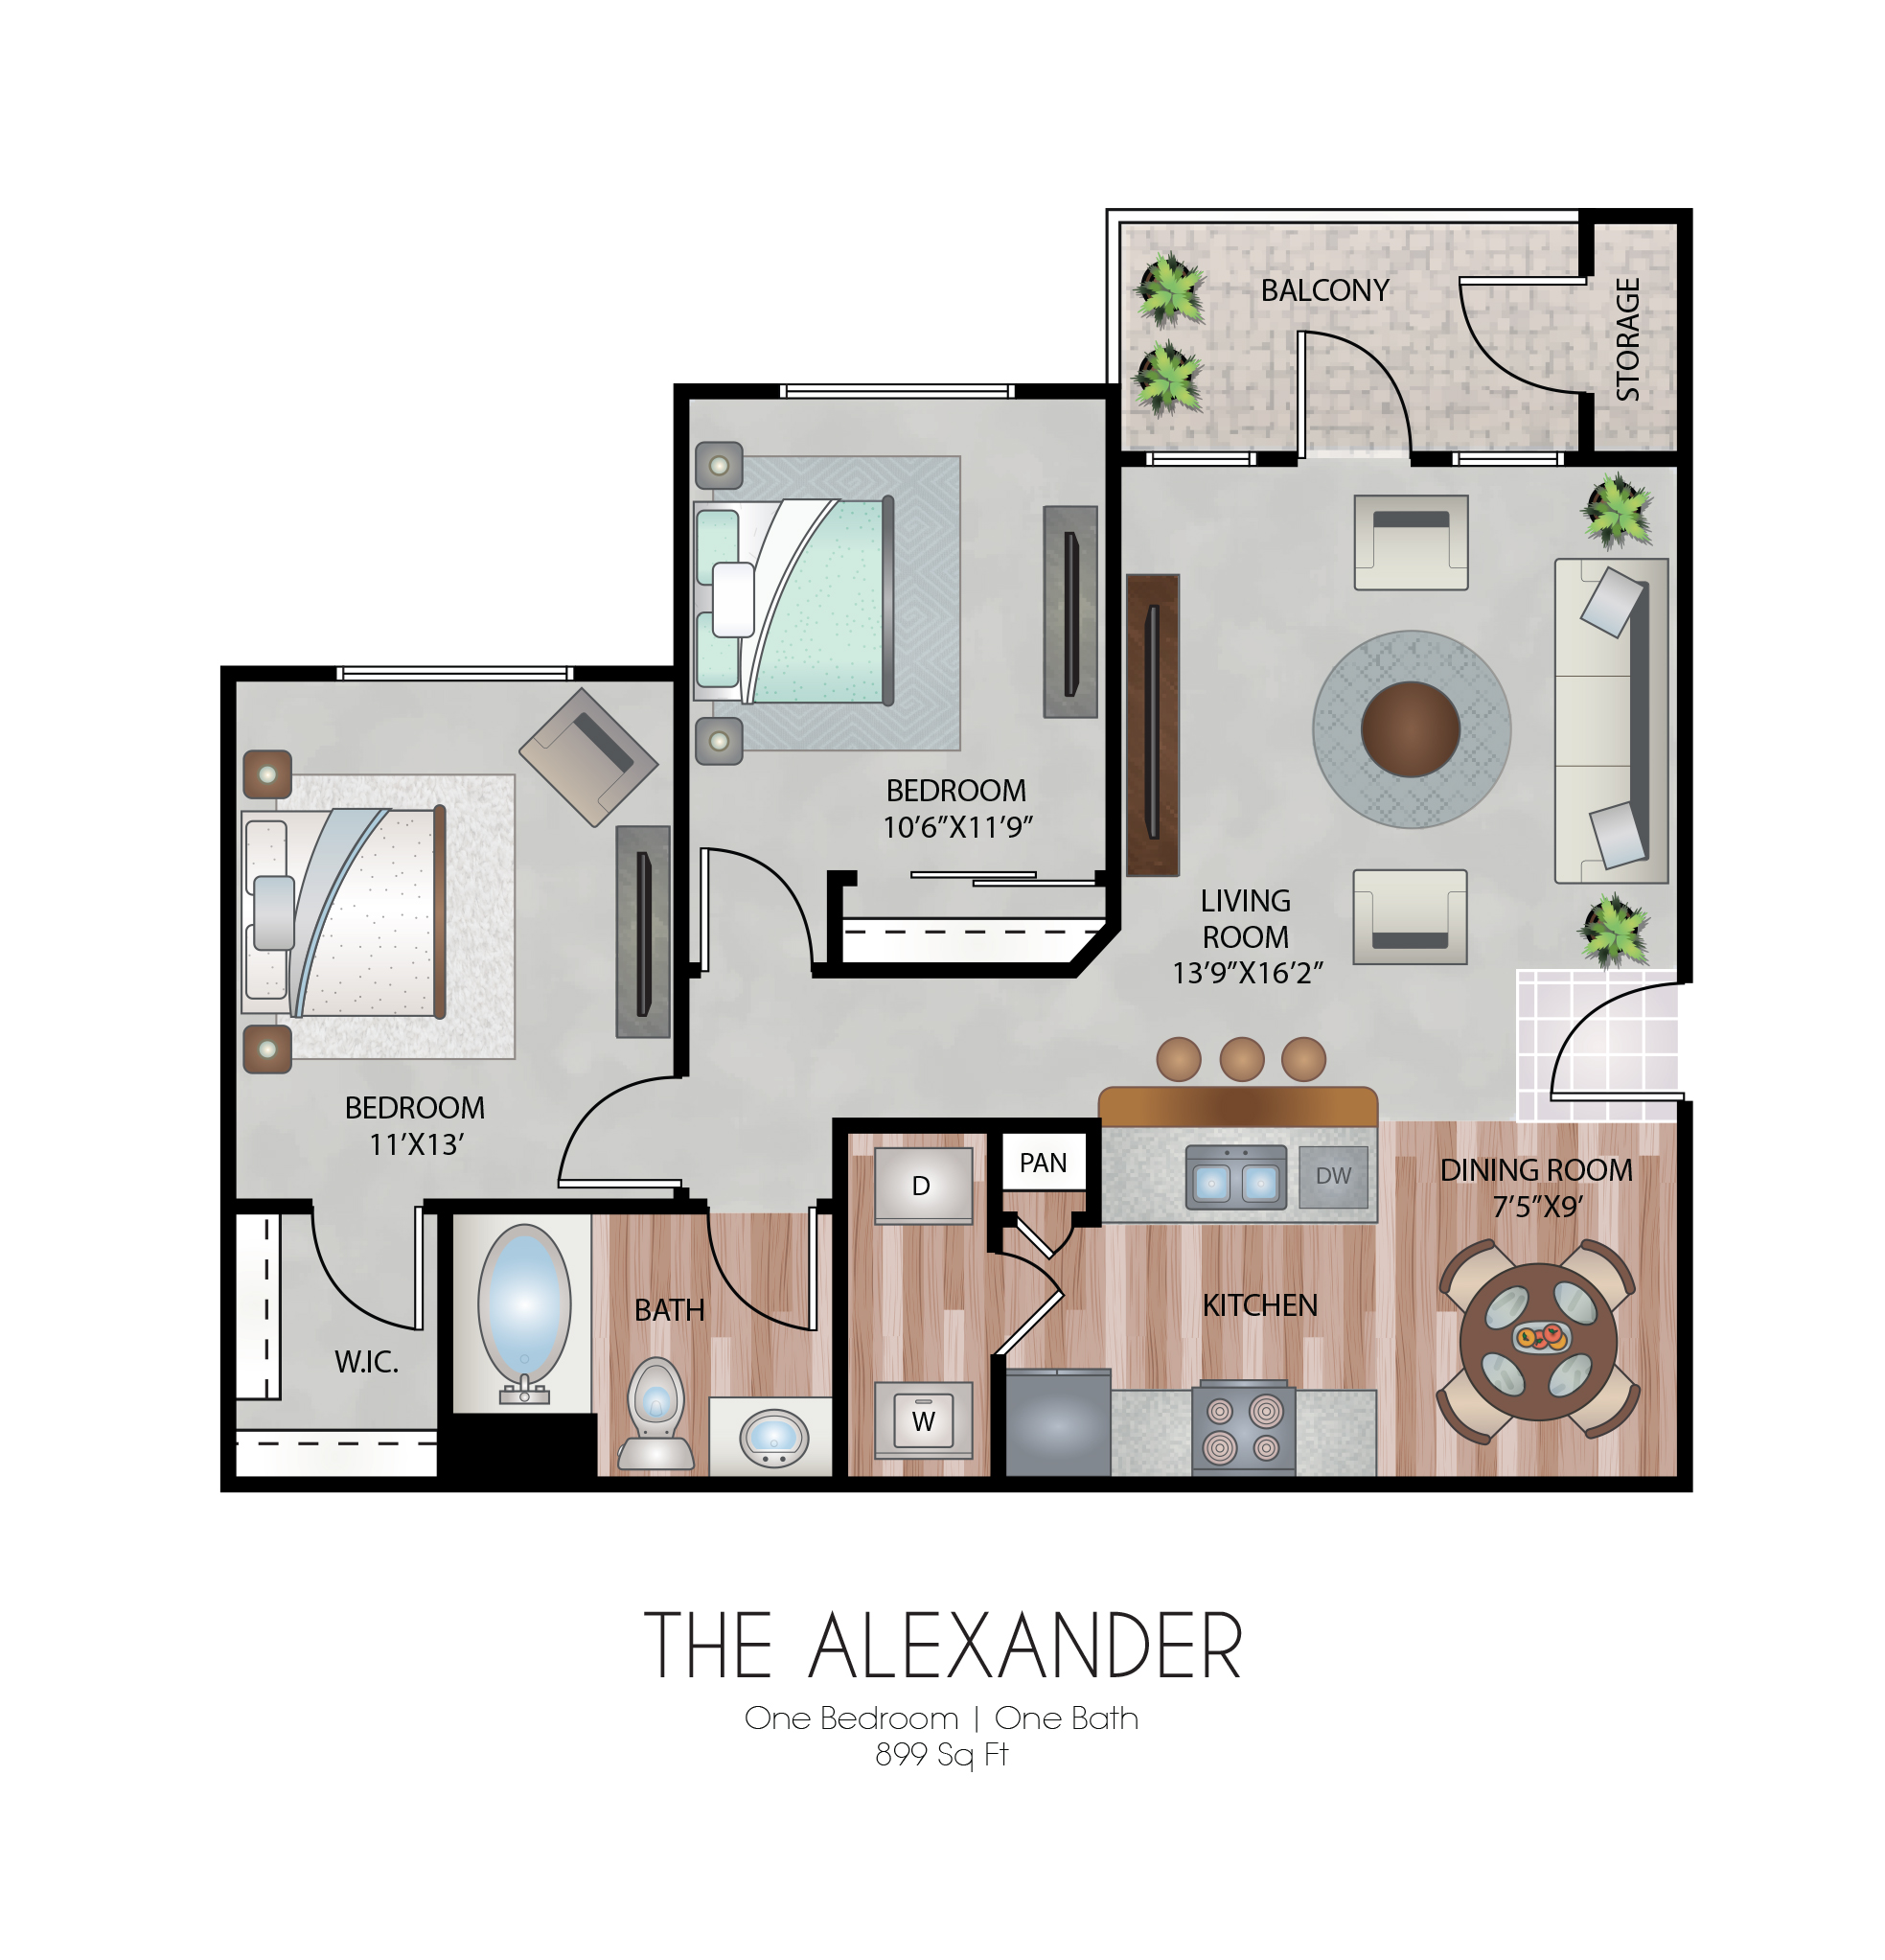 Floorplan - The Alexander image